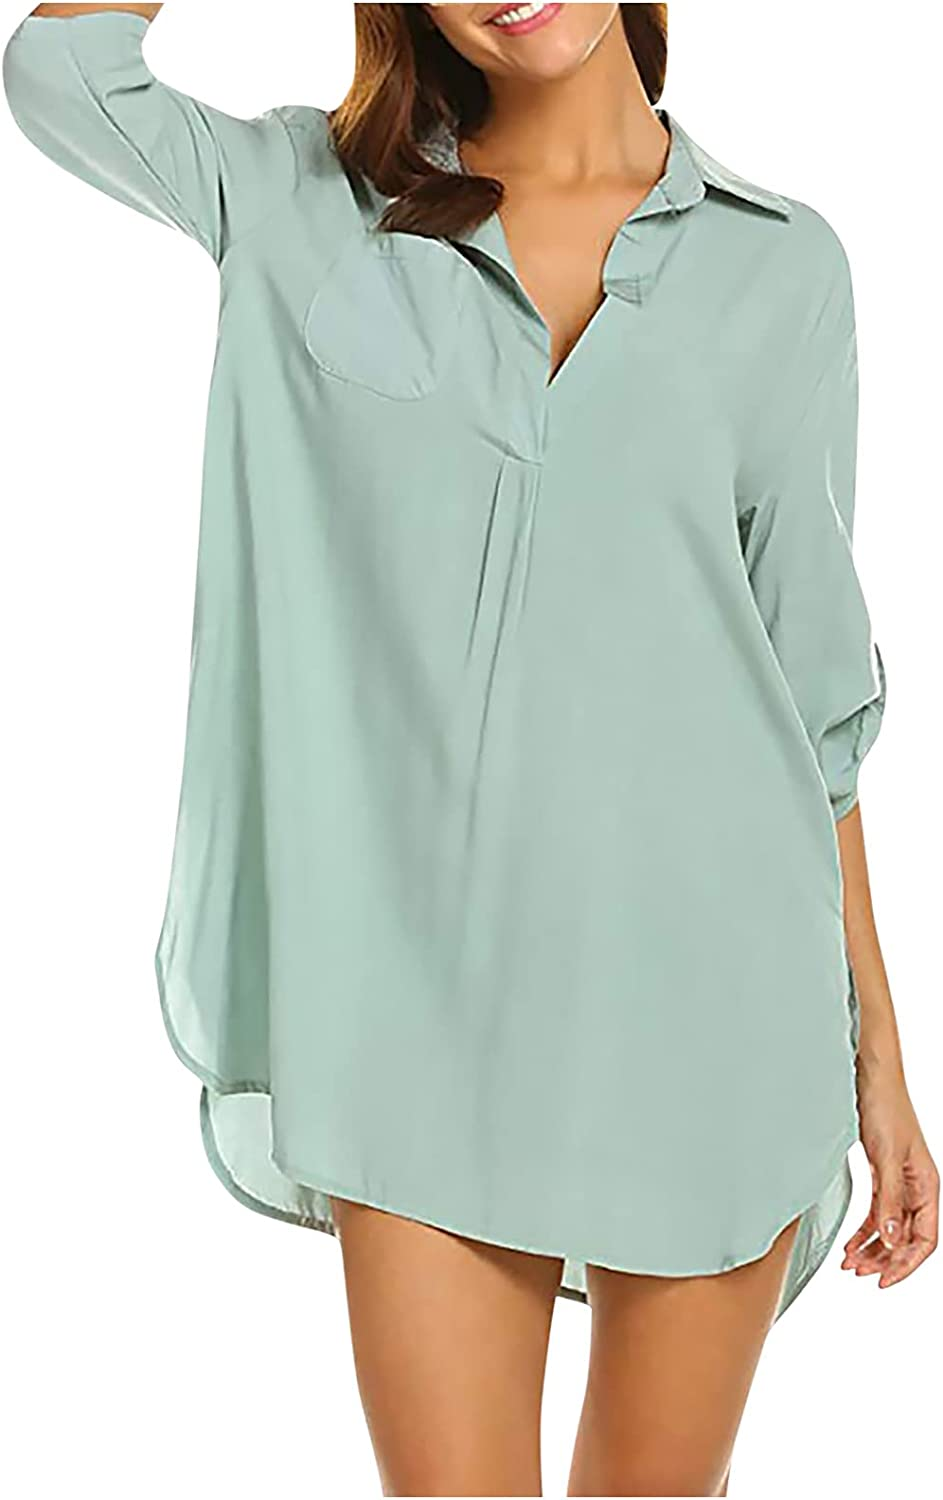 5665 Womens V Neck Tshirt Dresses, Lapel Rolled 3/4 Sleeve Sexy Deep V Neck Casual Side Slit Plus Size Summer Beach Coverup